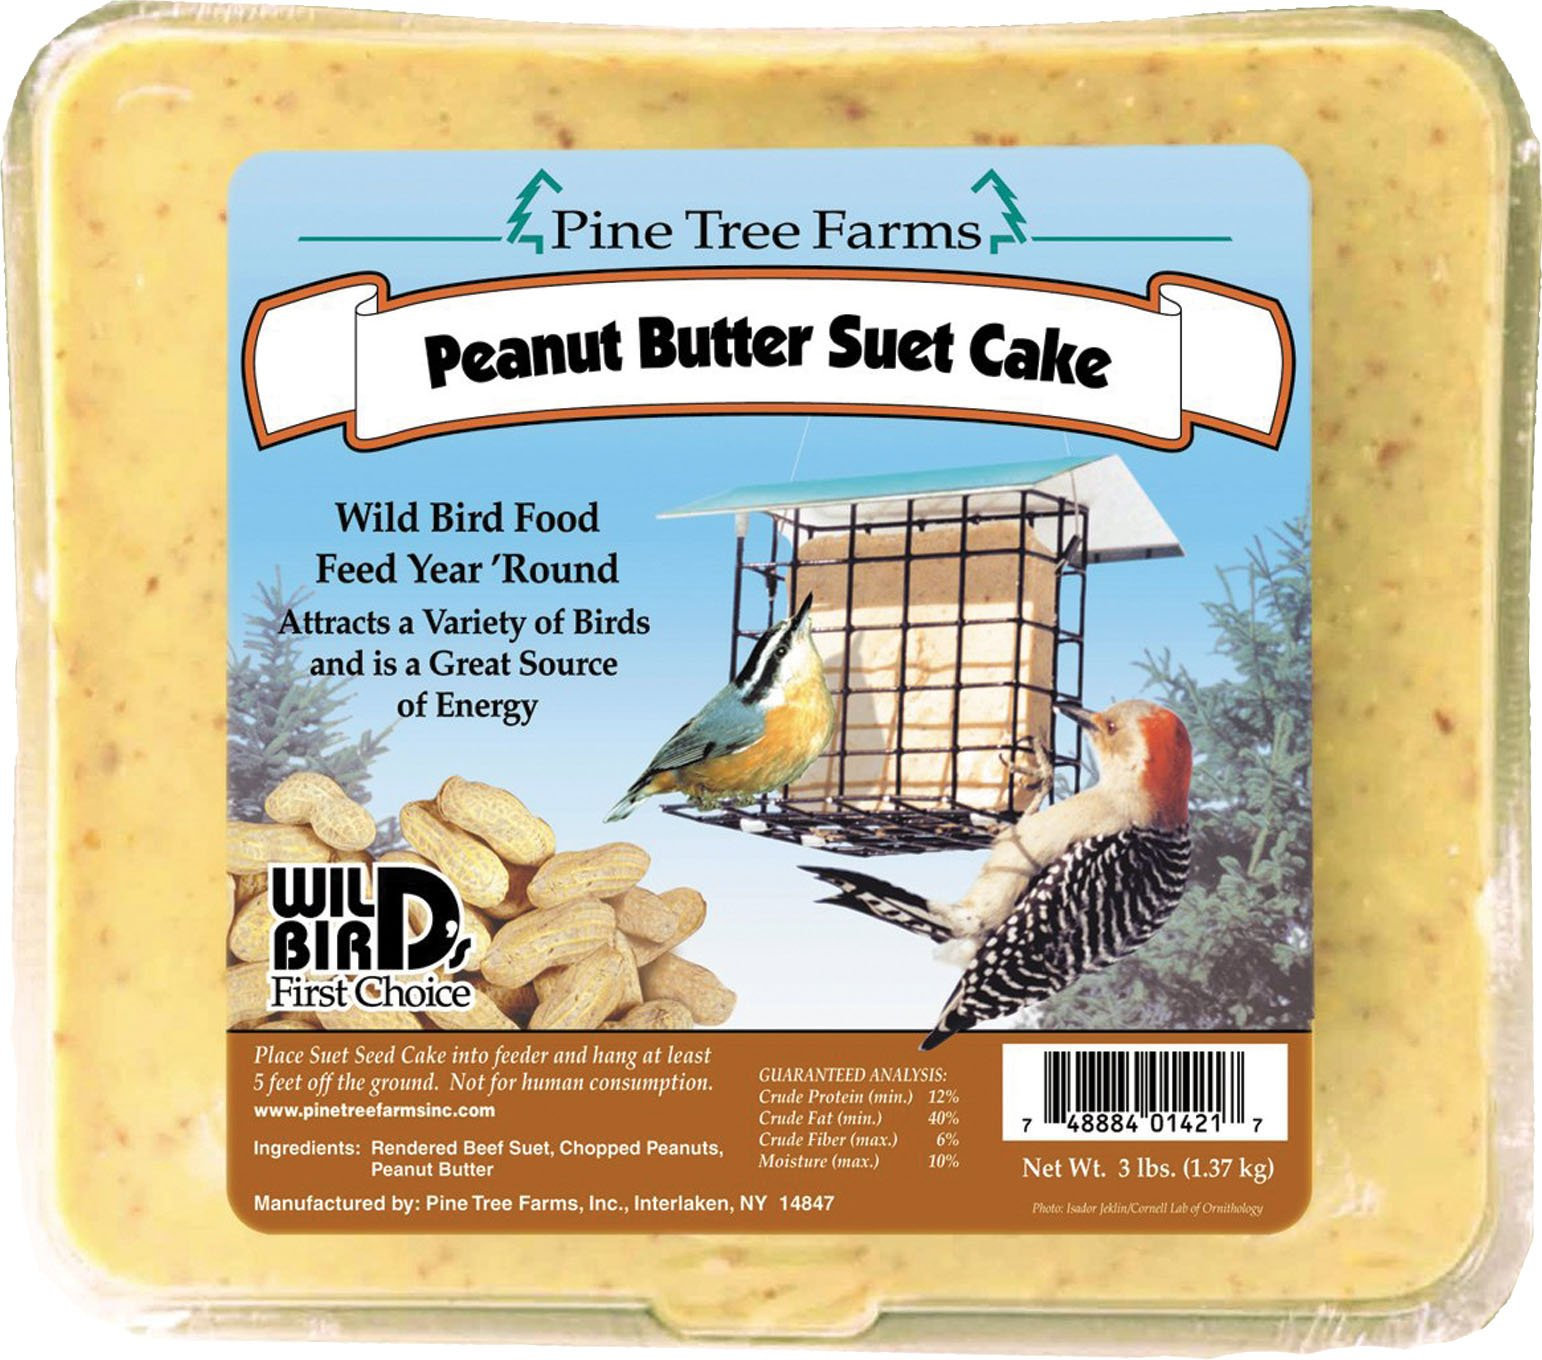 Case Pack of Pine Tree Farms Peanut Butter Suet Cakes, Brown, 3 lbs.